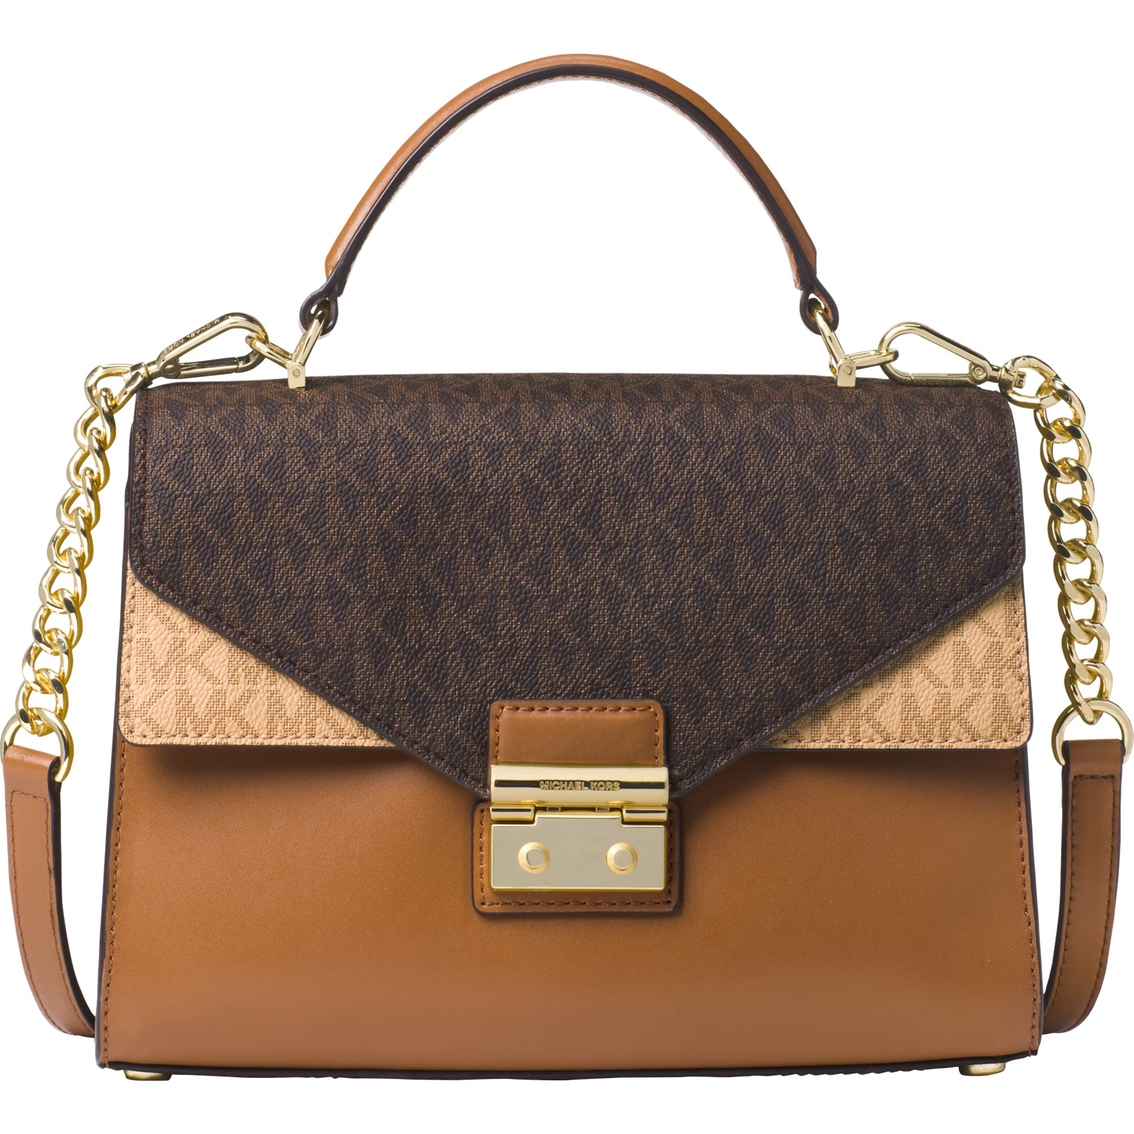 83a3eccbd2fe0 Michael Kors Sloan Medium Double Flap Satchel